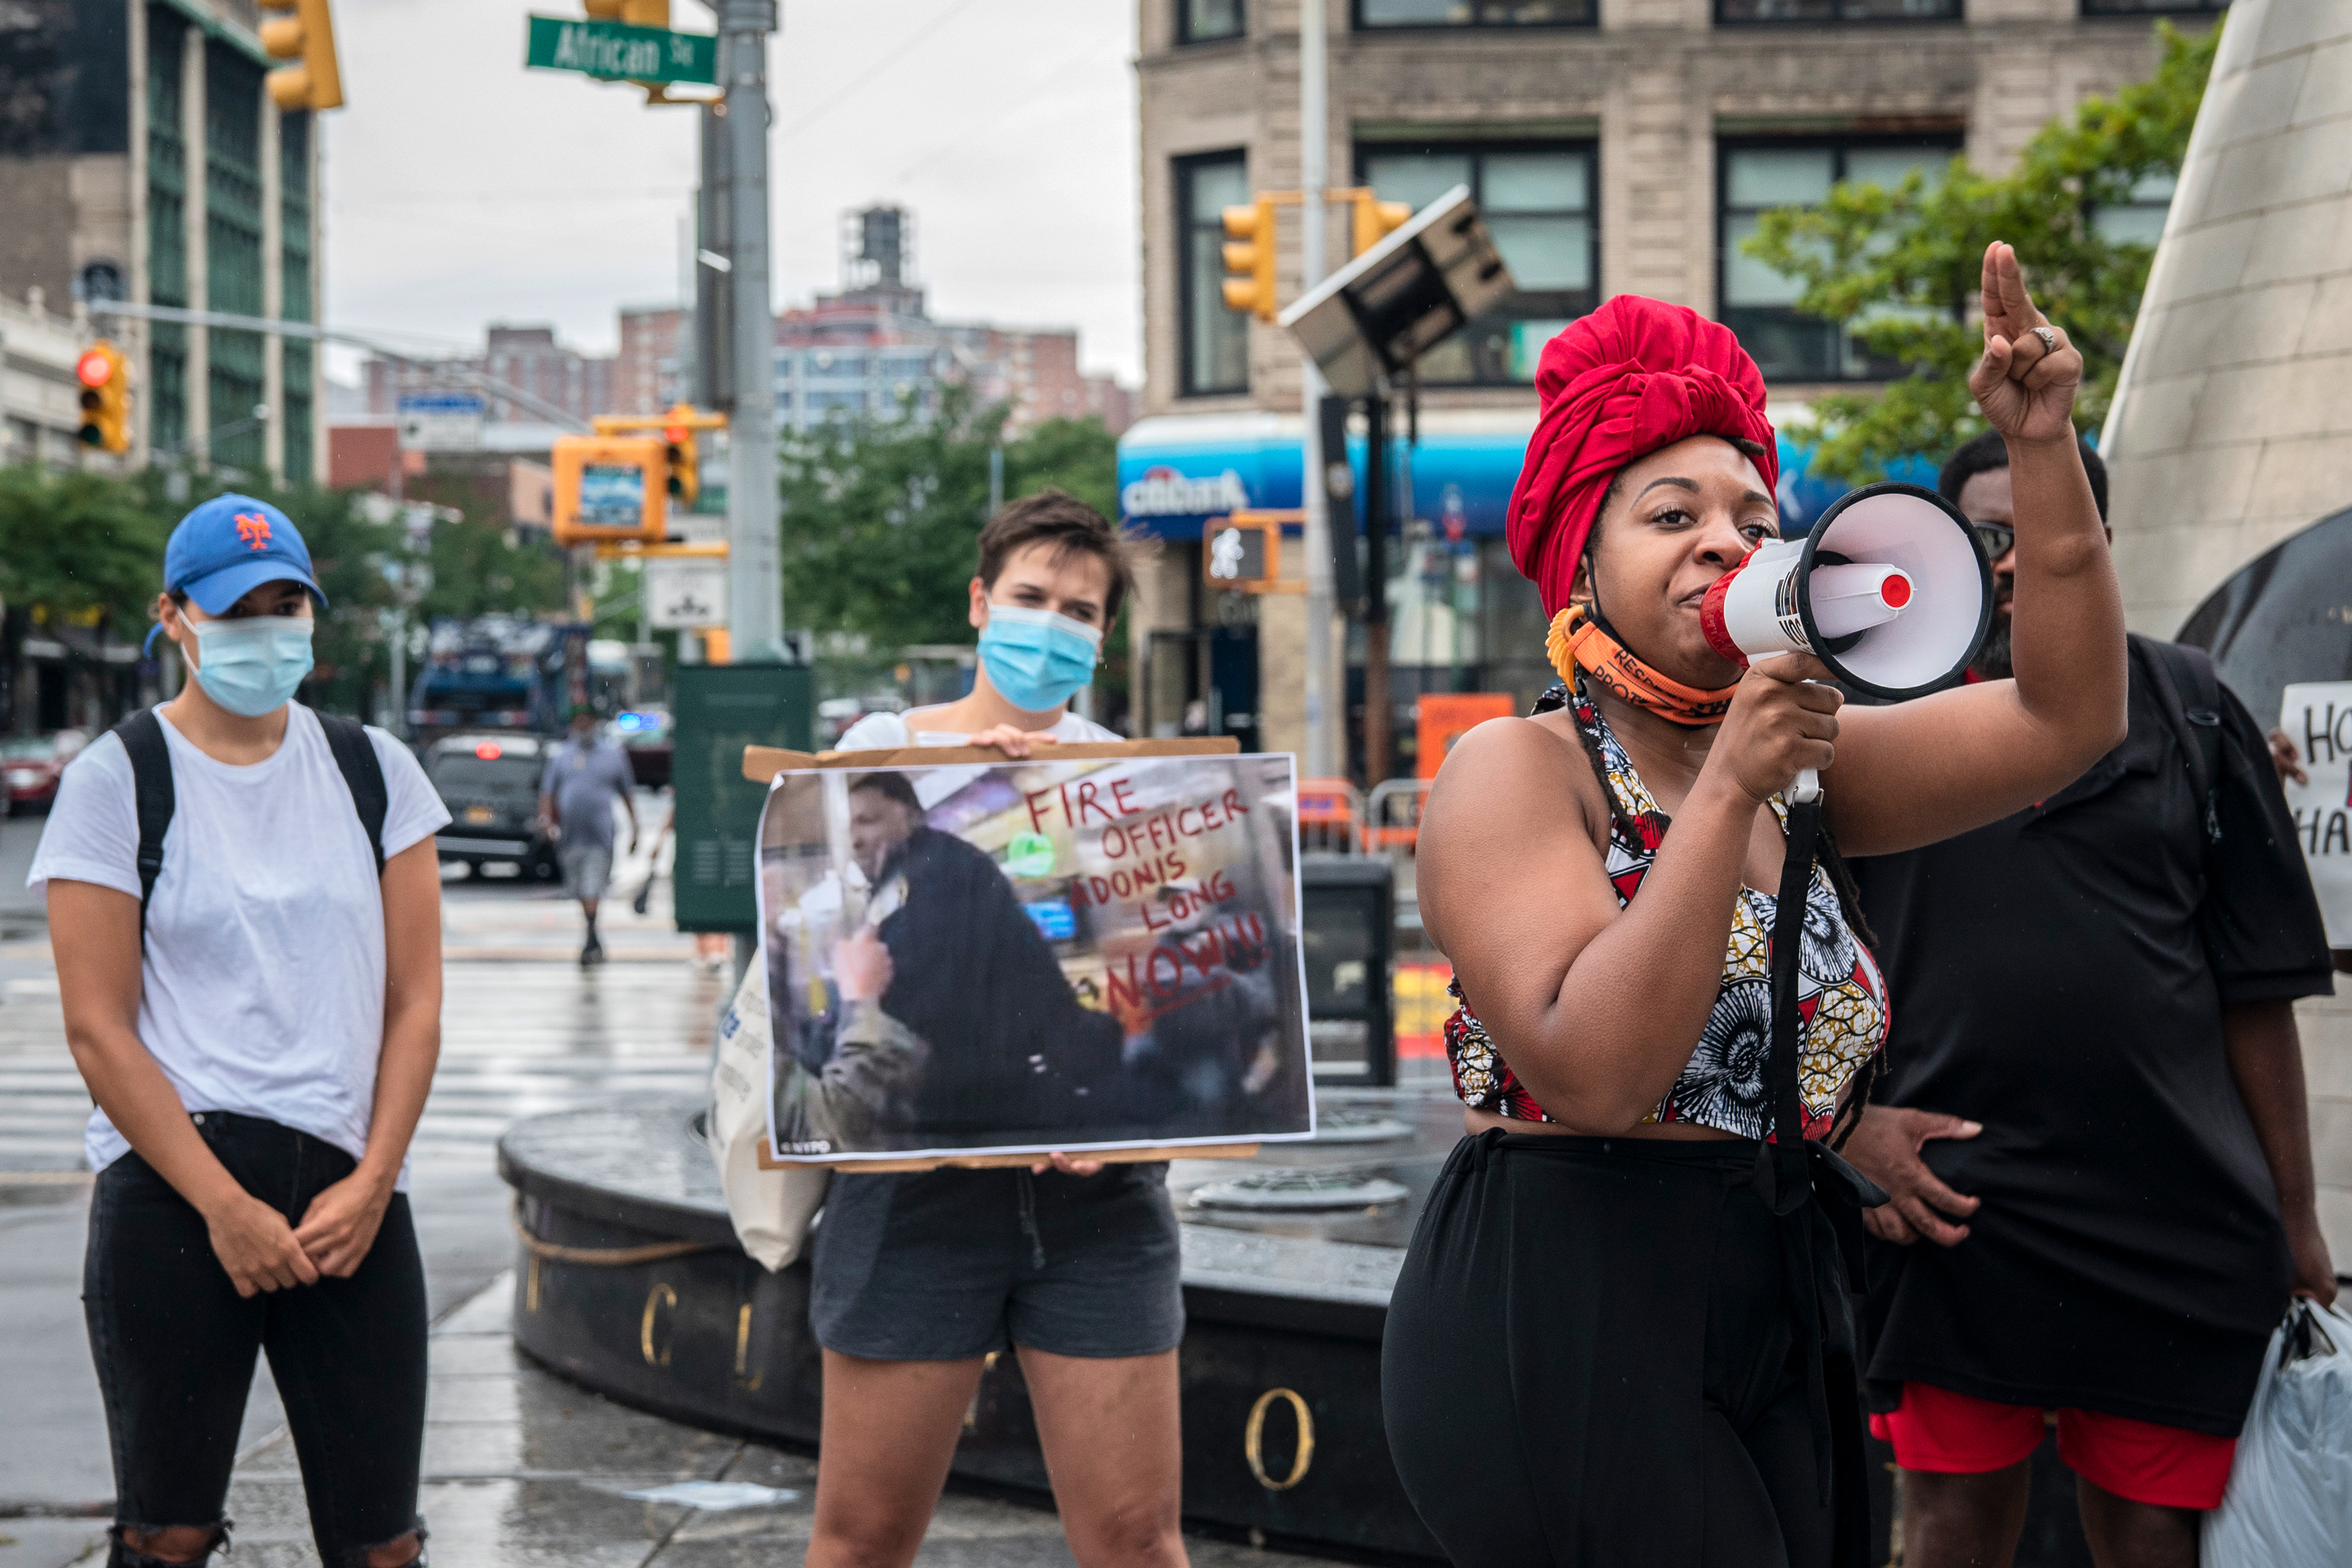 Organizer Celina Trowell, speaks at a rally in Harlem calls for the firing of a cop seen on video punching a homeless man, July 24, 2020.